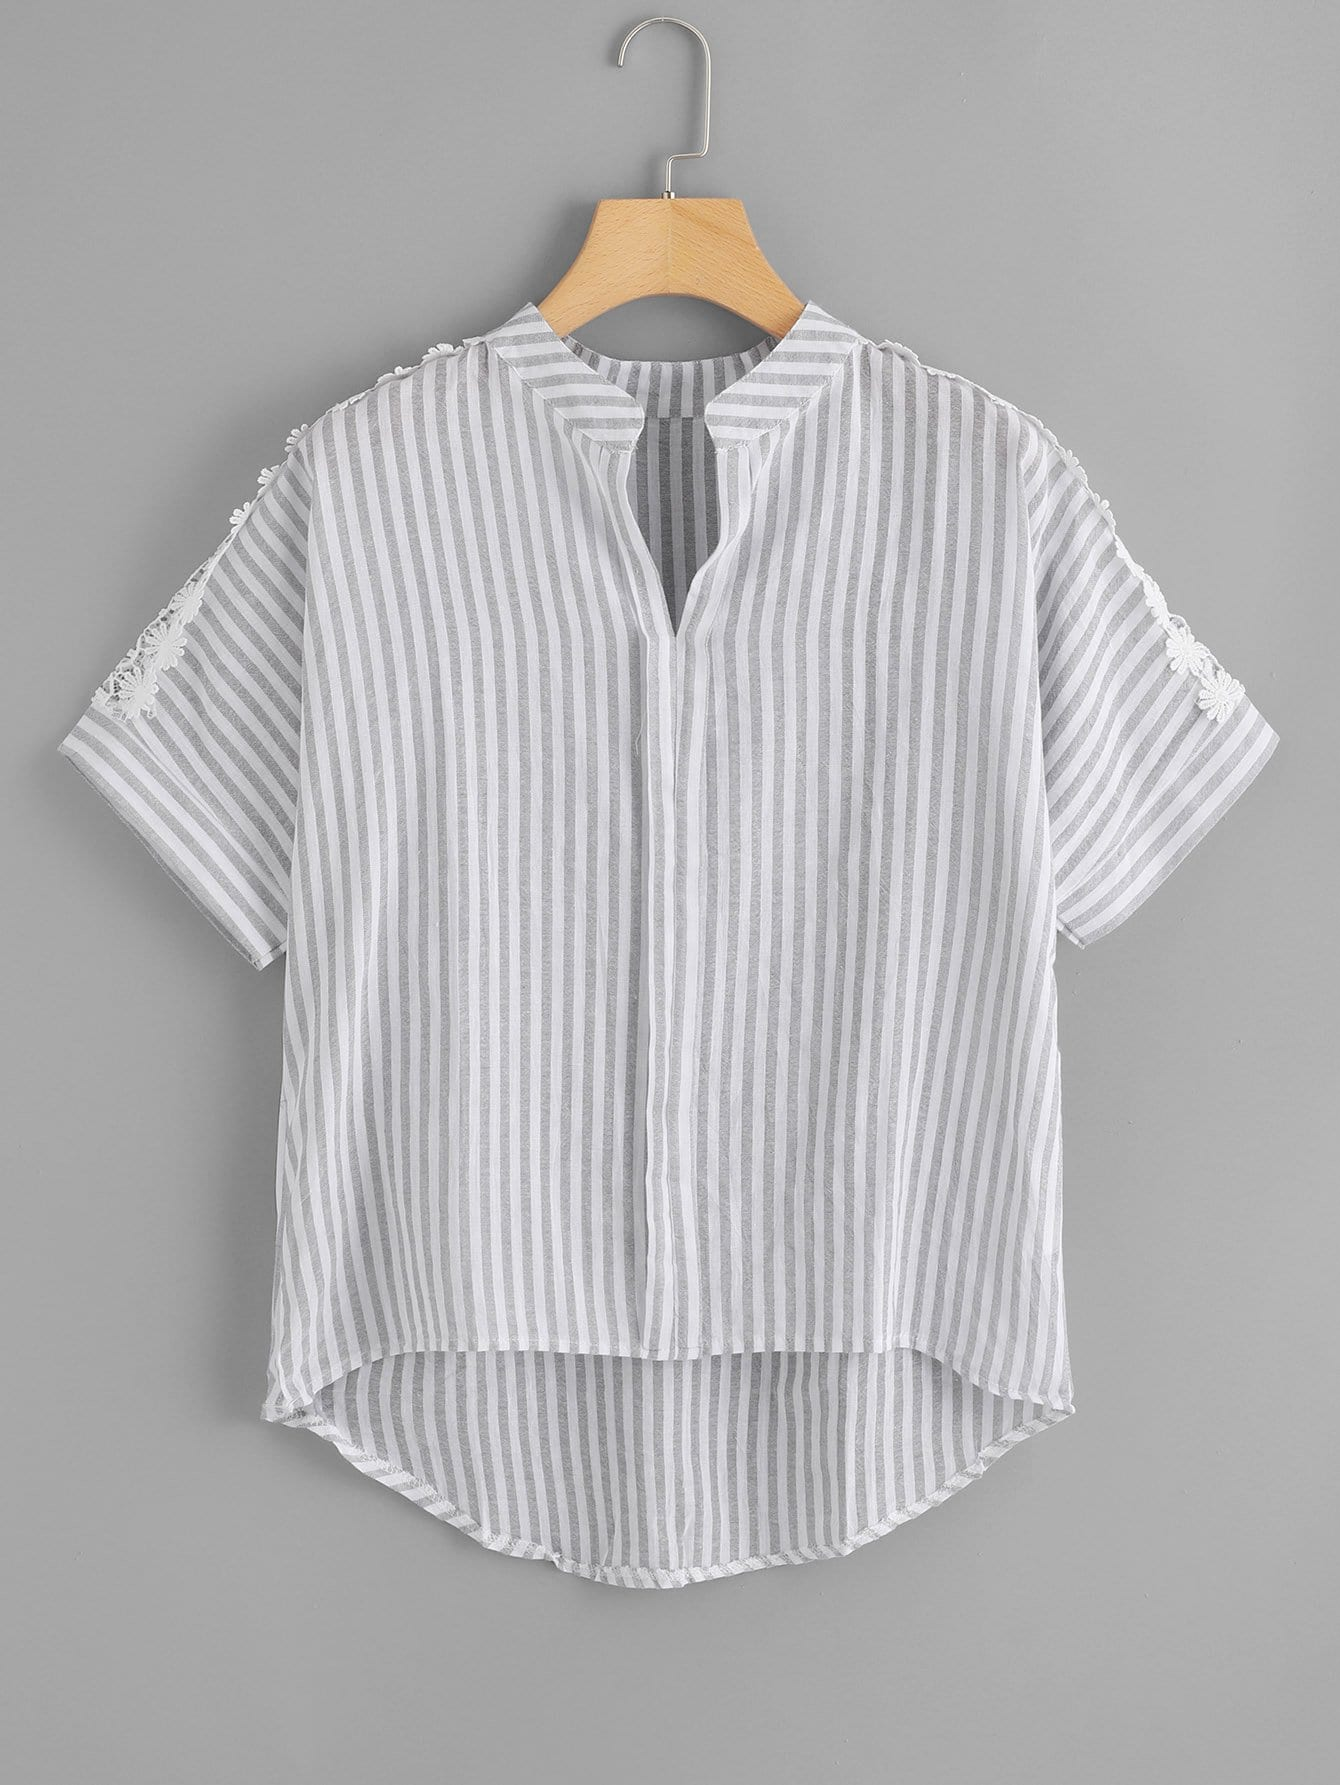 Lace Panel Striped Blouse